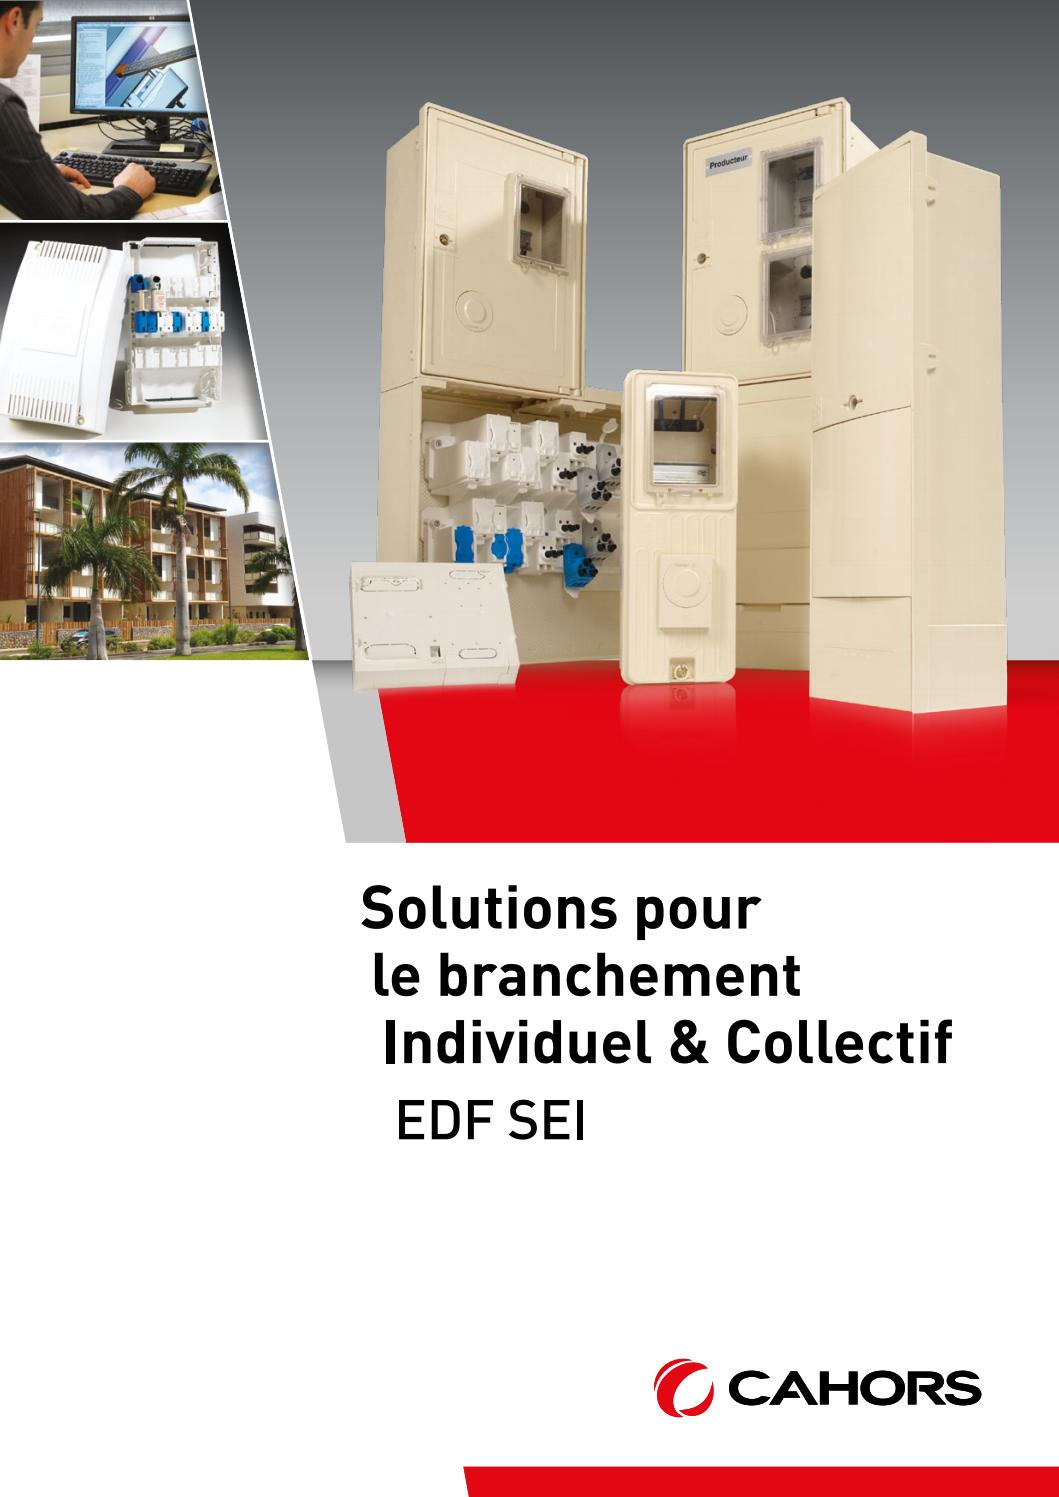 solutions branchement individuel collectif edf sei fr by cahors issuu. Black Bedroom Furniture Sets. Home Design Ideas